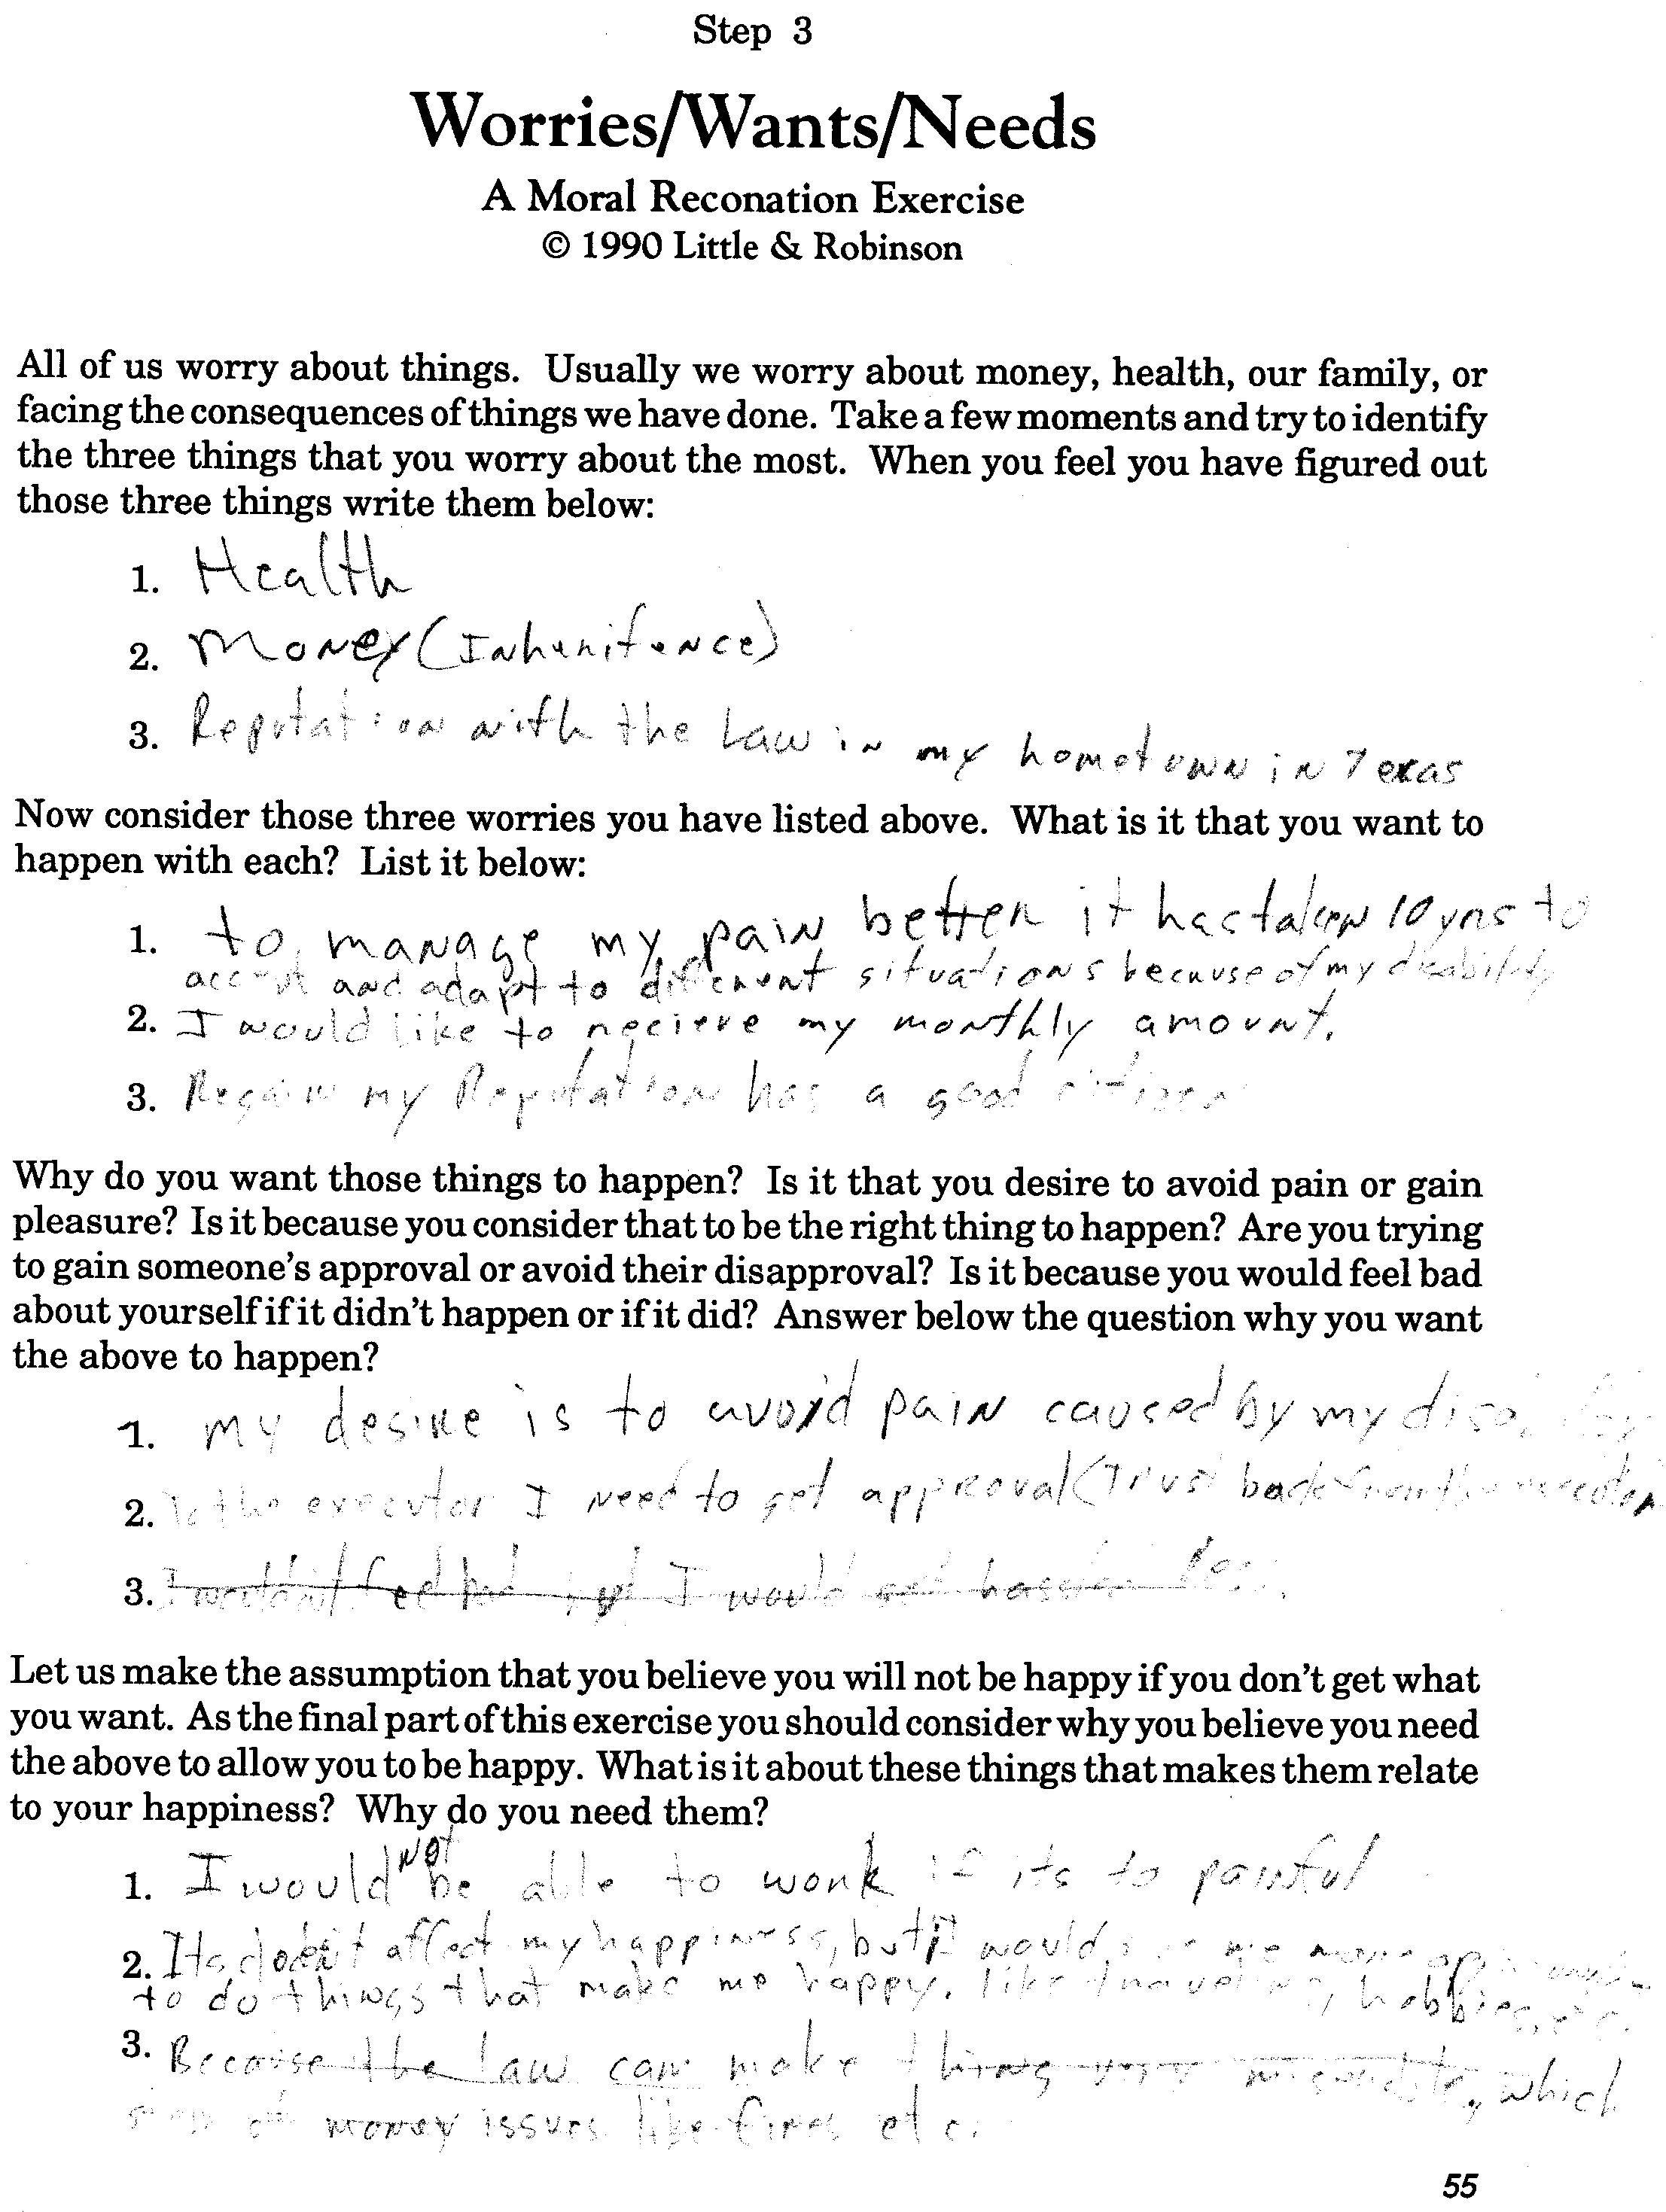 Worksheets Aa Tenth Step Worksheet drugcourt caryhayes2003 step 3 worries wants needs jpg